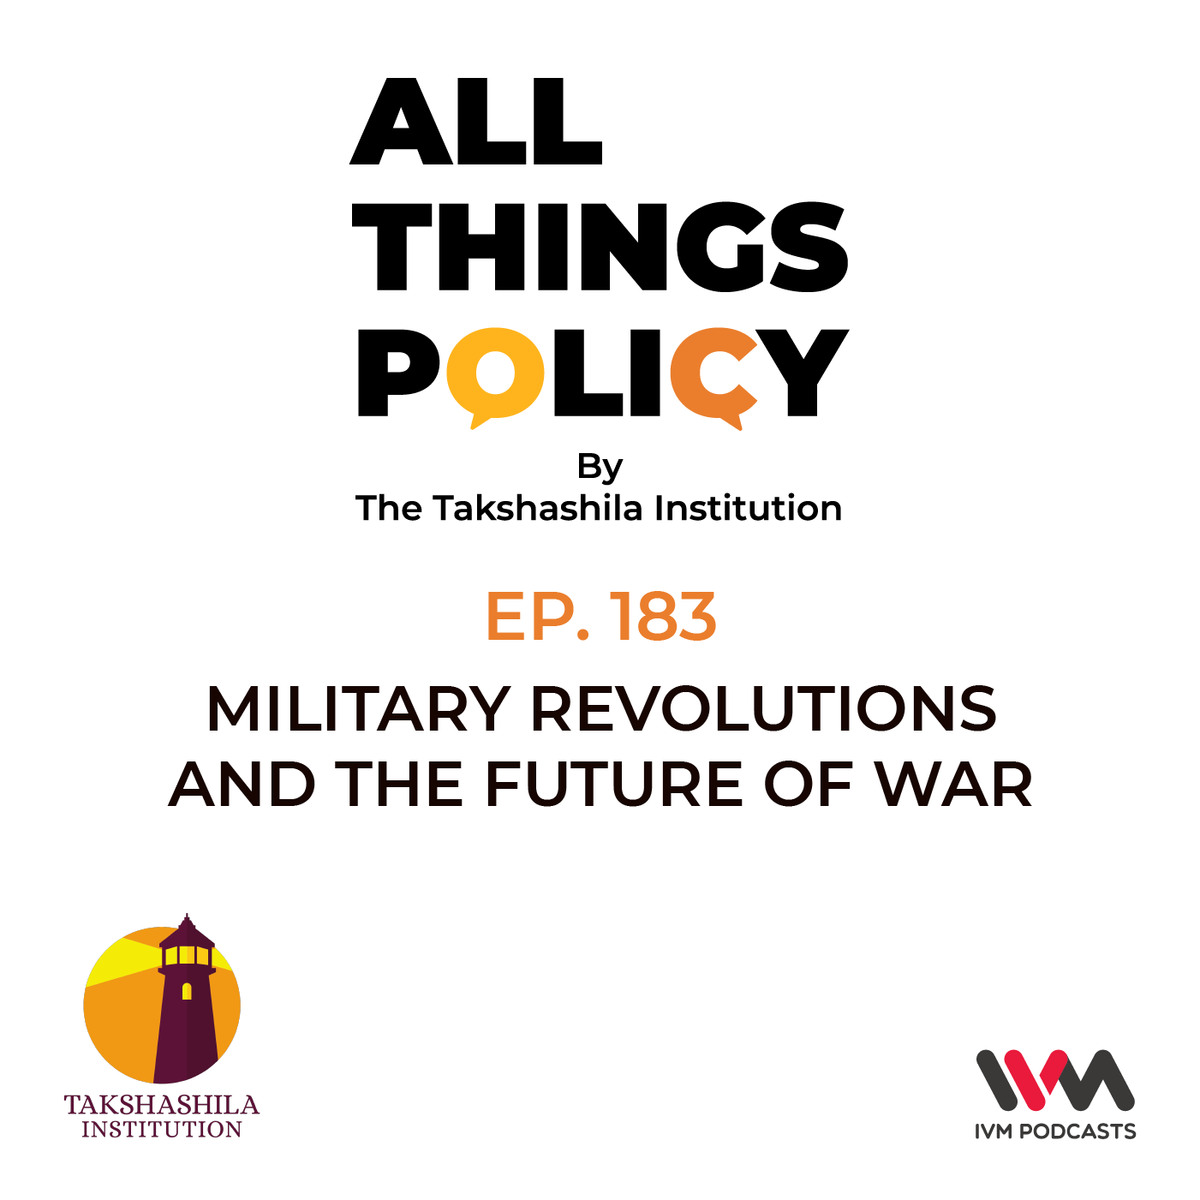 Ep. 183: Military Revolutions and the Future of War